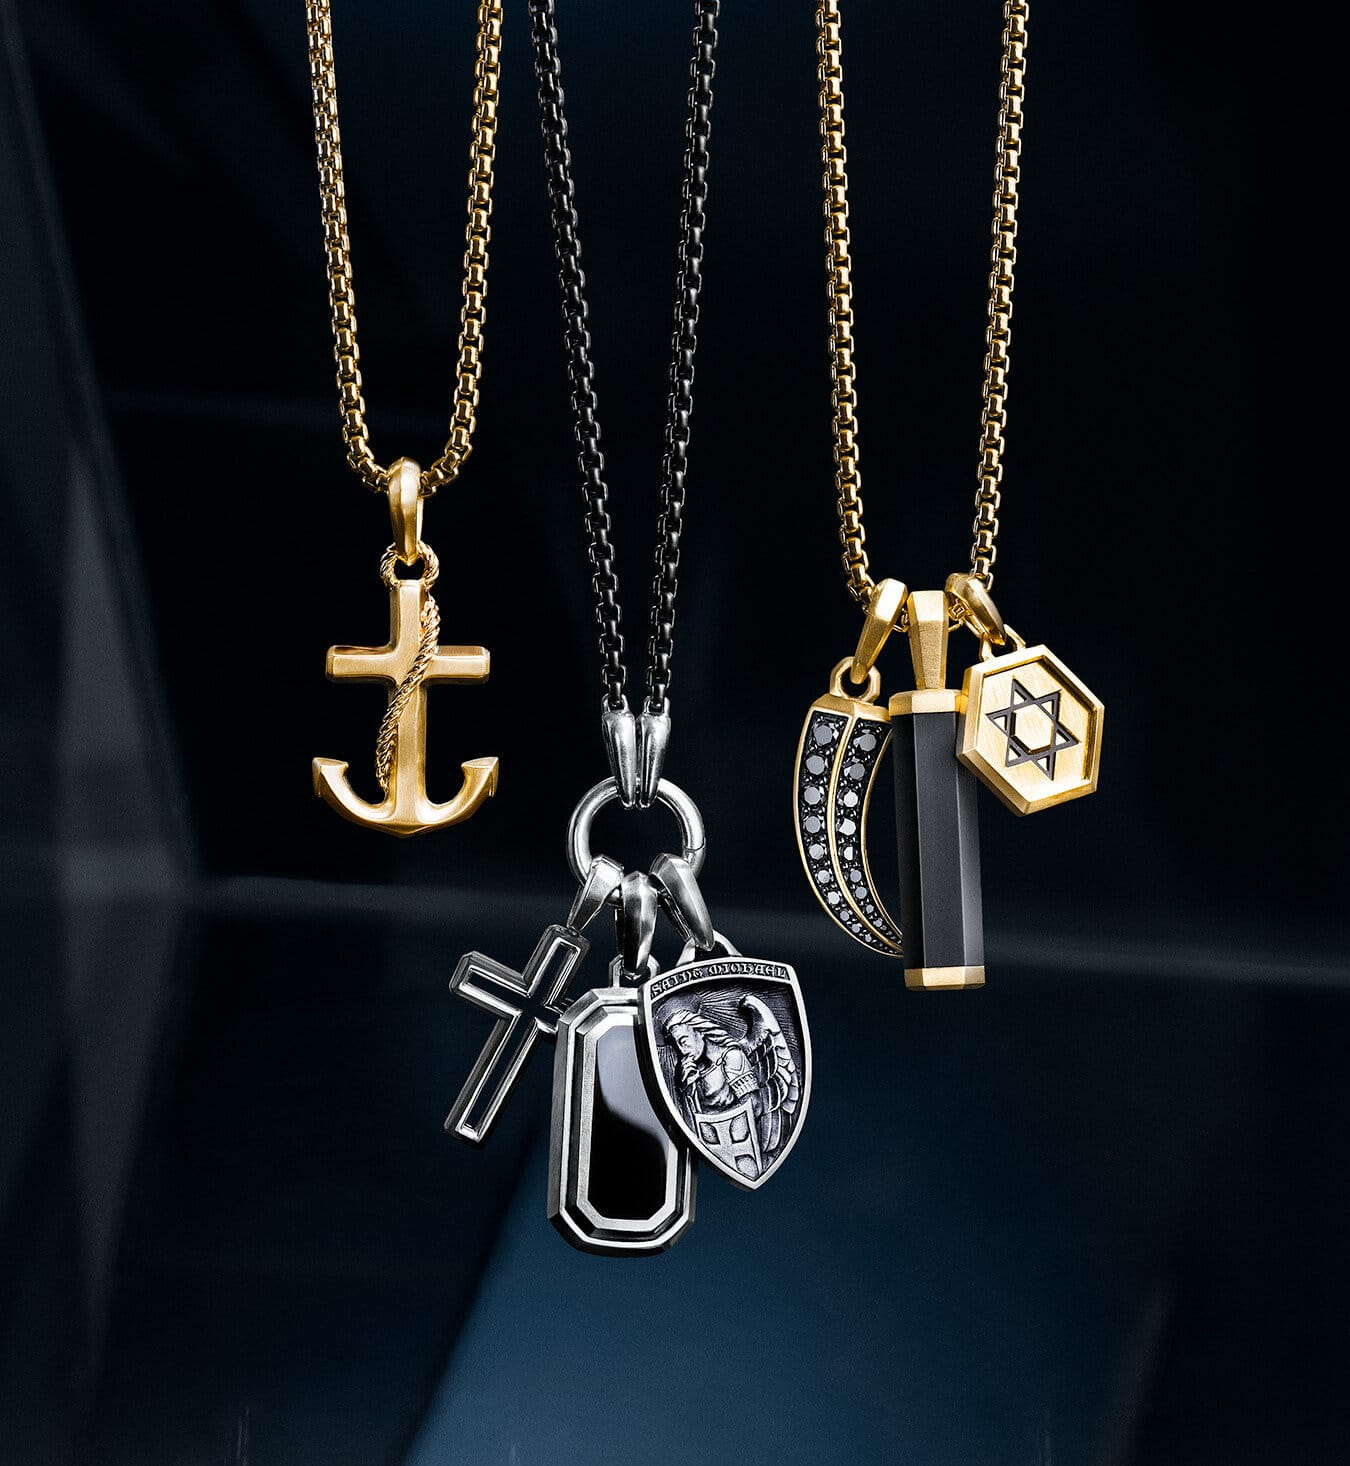 A color photograph shows three groups of David Yurman men's amulets, from the Maritime®, Forged Carbon, Deco, Amulets, Roman and Hex collections, strung on box-chain necklaces in front of dark reflective surfaces with angular, multi-colored reflections of light. The Maritime® anchor amulet is crafted from 18K yellow gold and strung on an 18K yellow gold chain. Three amulets crafted from sterling silver are strung on a darkened stainless steel chain: the Forged Carbon cross amulet with forged carbon, the Deco amulet with black onyx, and the St. Michael amulet. Three amulets crafted from 18K yellow gold are strung on an 18K yellow gold chain: the Roman claw amulet with pavé black diamonds, the Hex barrel amulet in black rubber and the Roman Star of David.